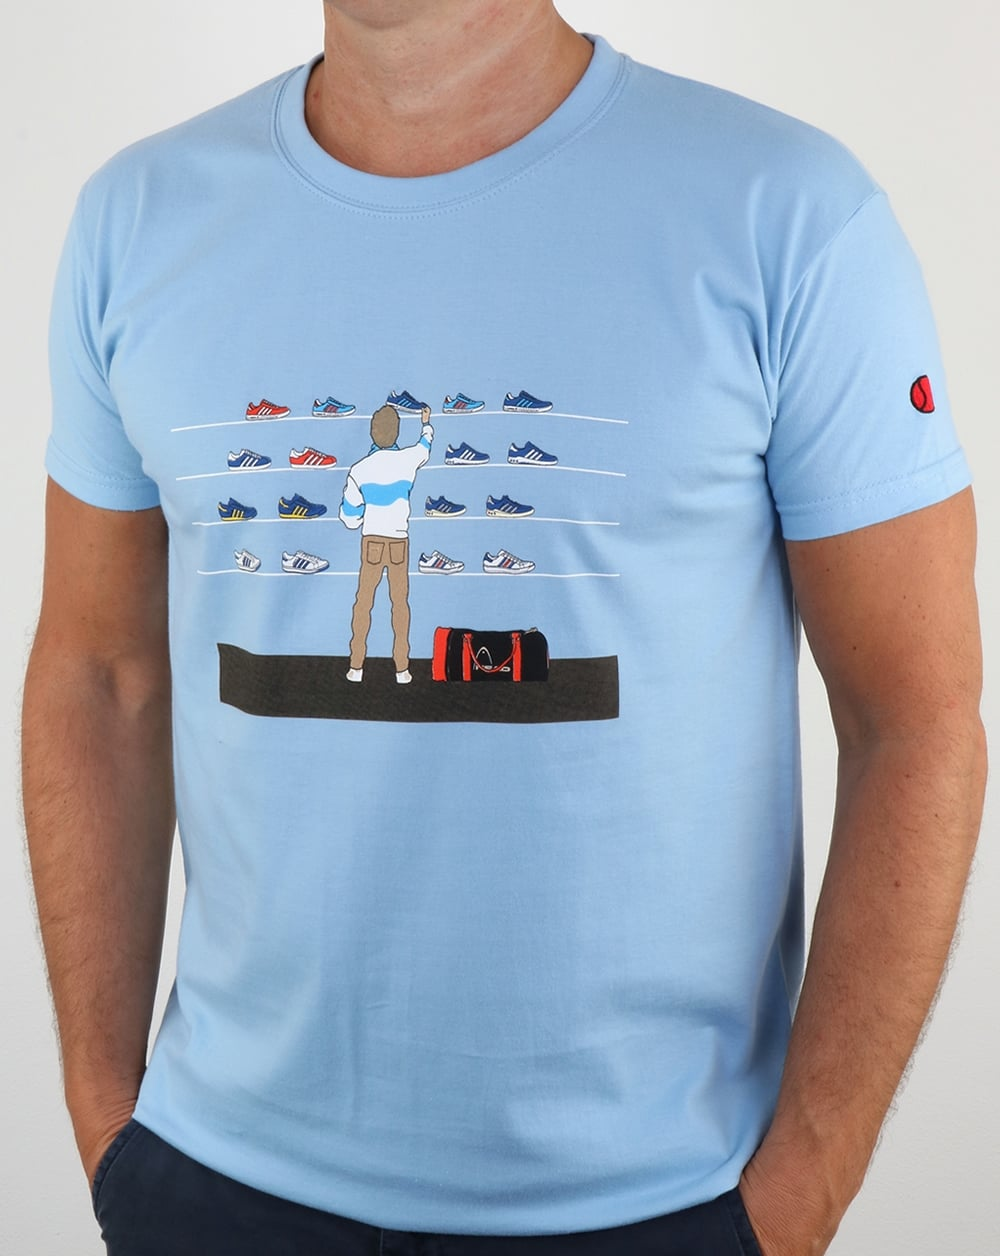 9827317c 80s Casuals T Shirts North - DREAMWORKS